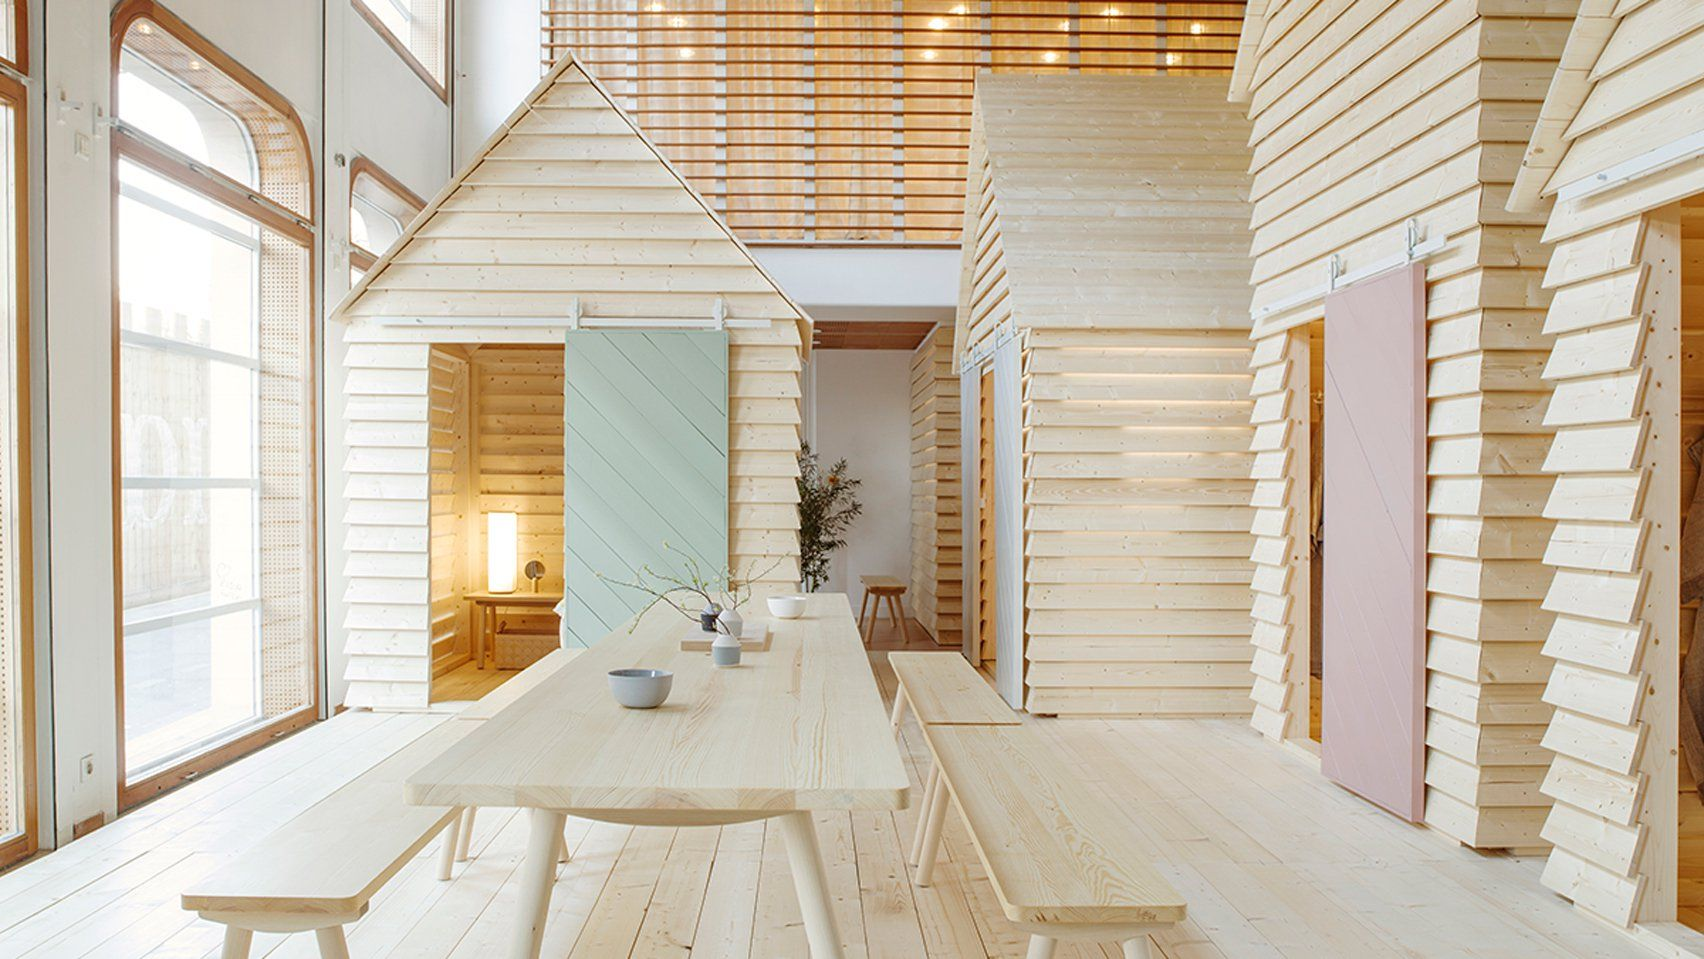 Visitors To The Koti Hotel In Paris Will Be Immersed In A Finnish Experience Sleeping In Wo Interior Architecture Design Hotel Interiors Interior Architecture